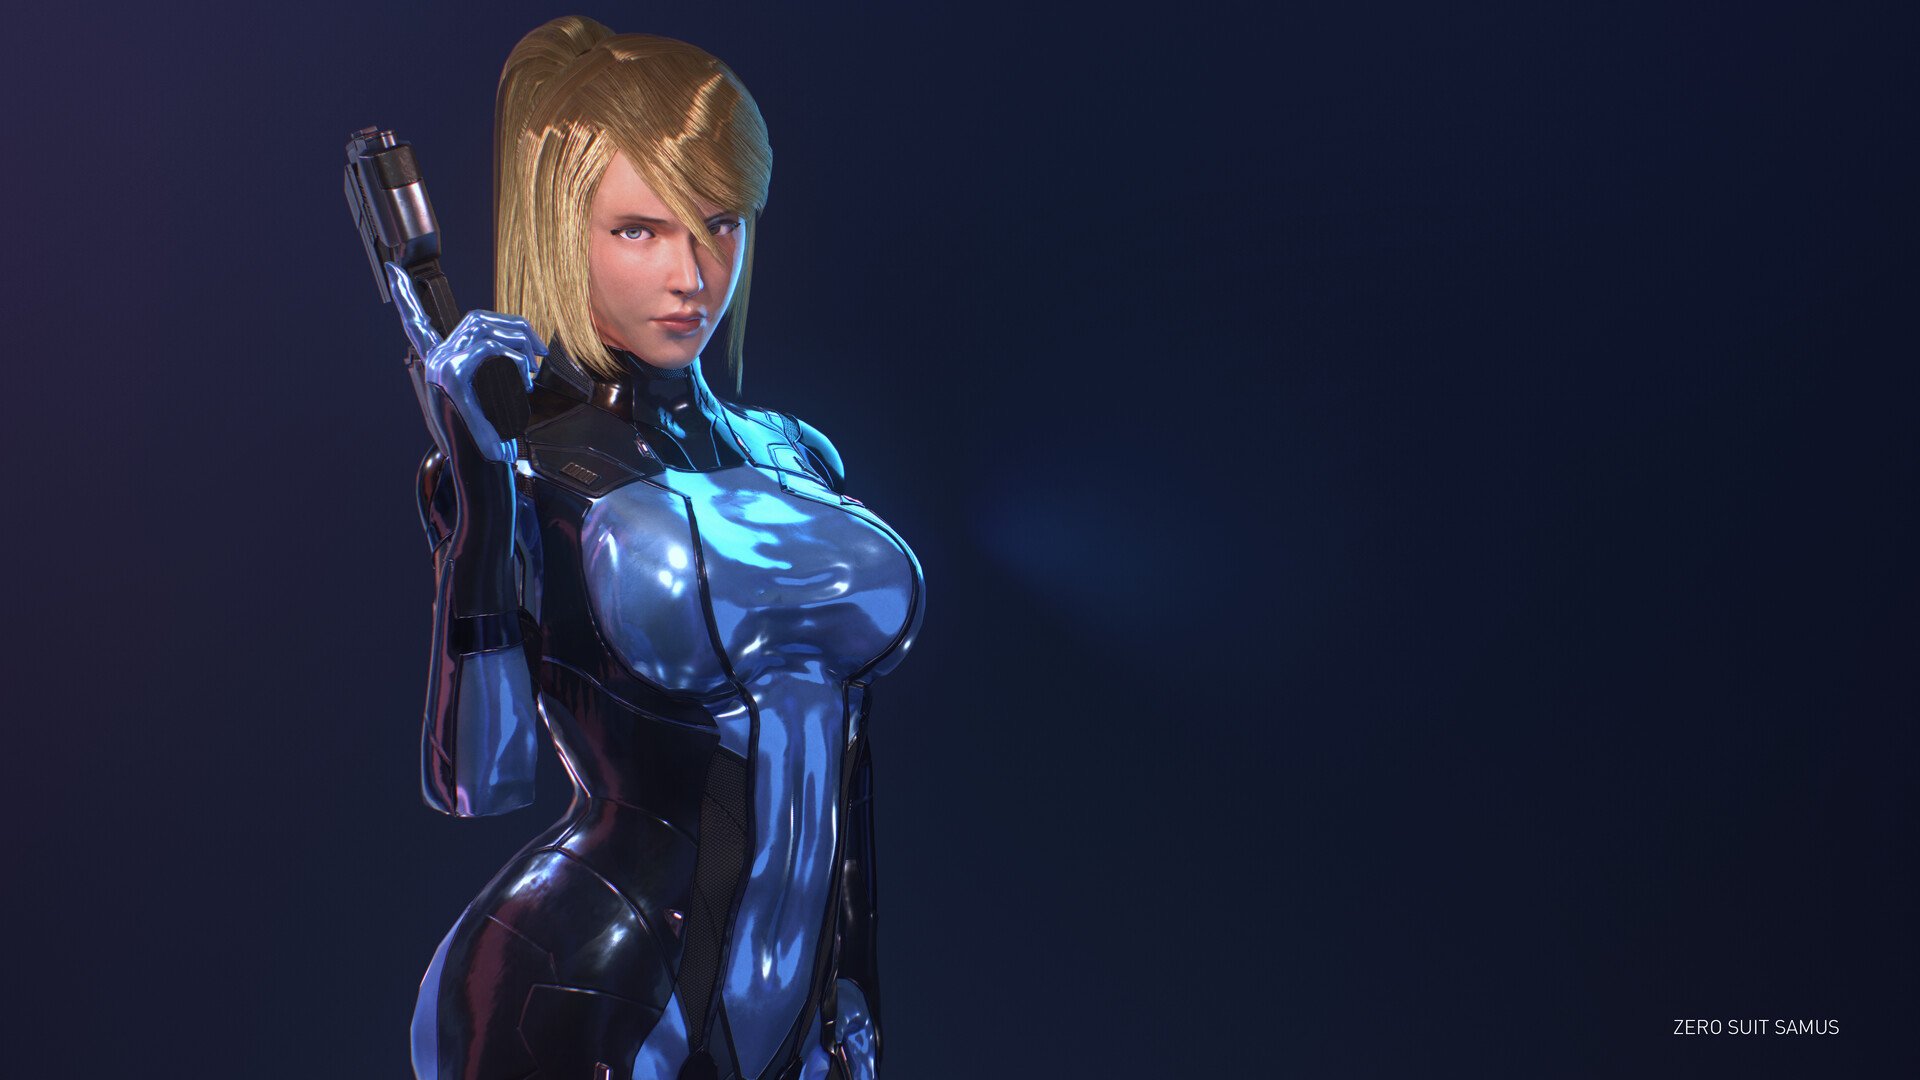 Zero Suit Samus Wallpaper Posted By Sarah Sellers